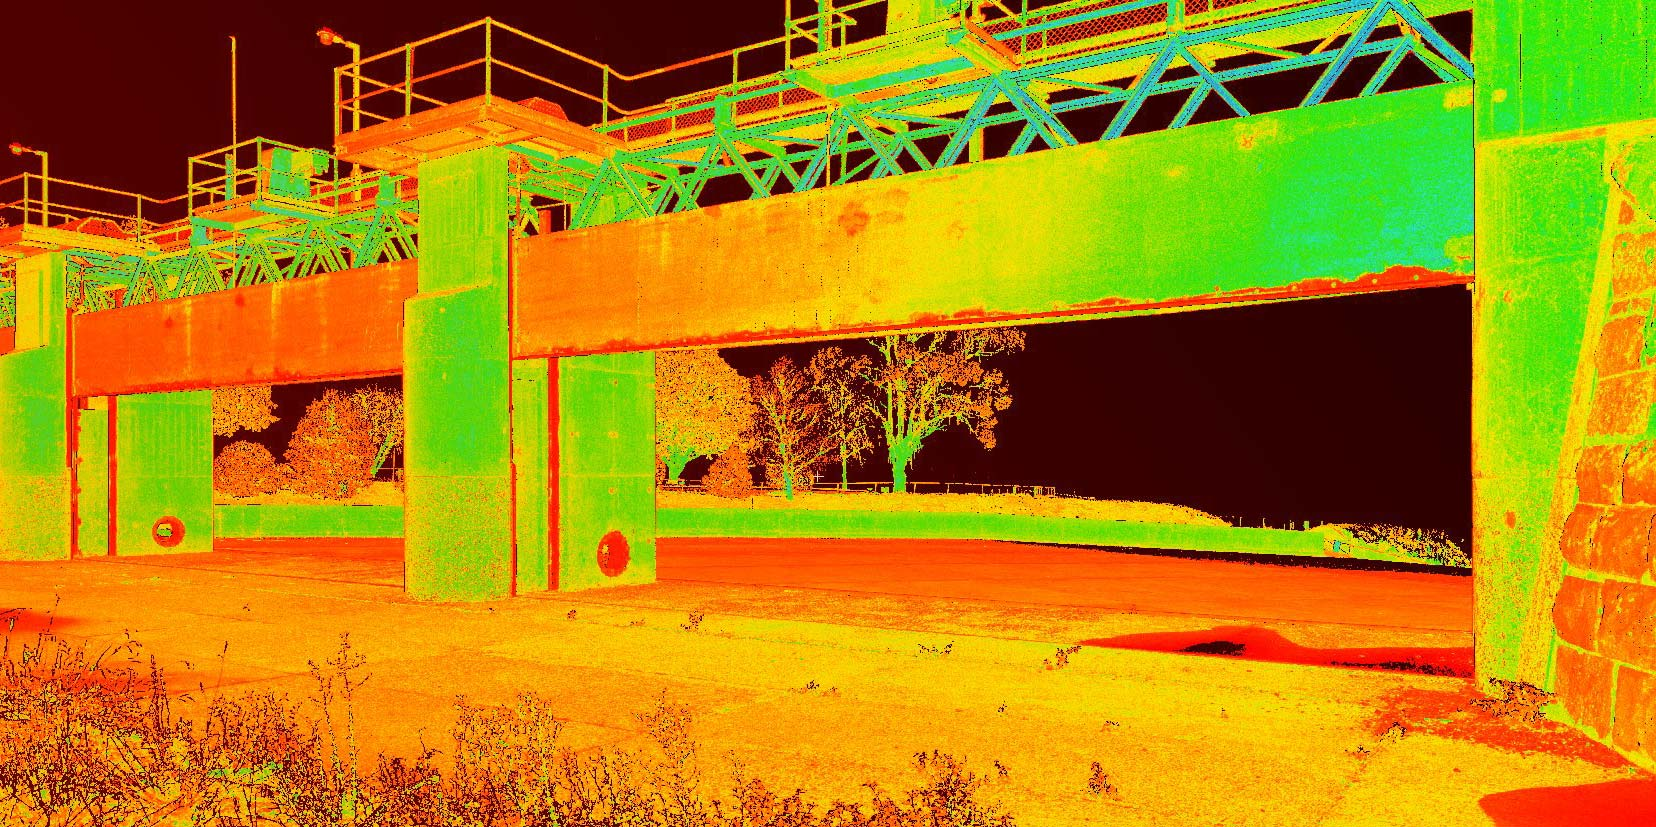 Improving safety and reducing costs with 3D scanners